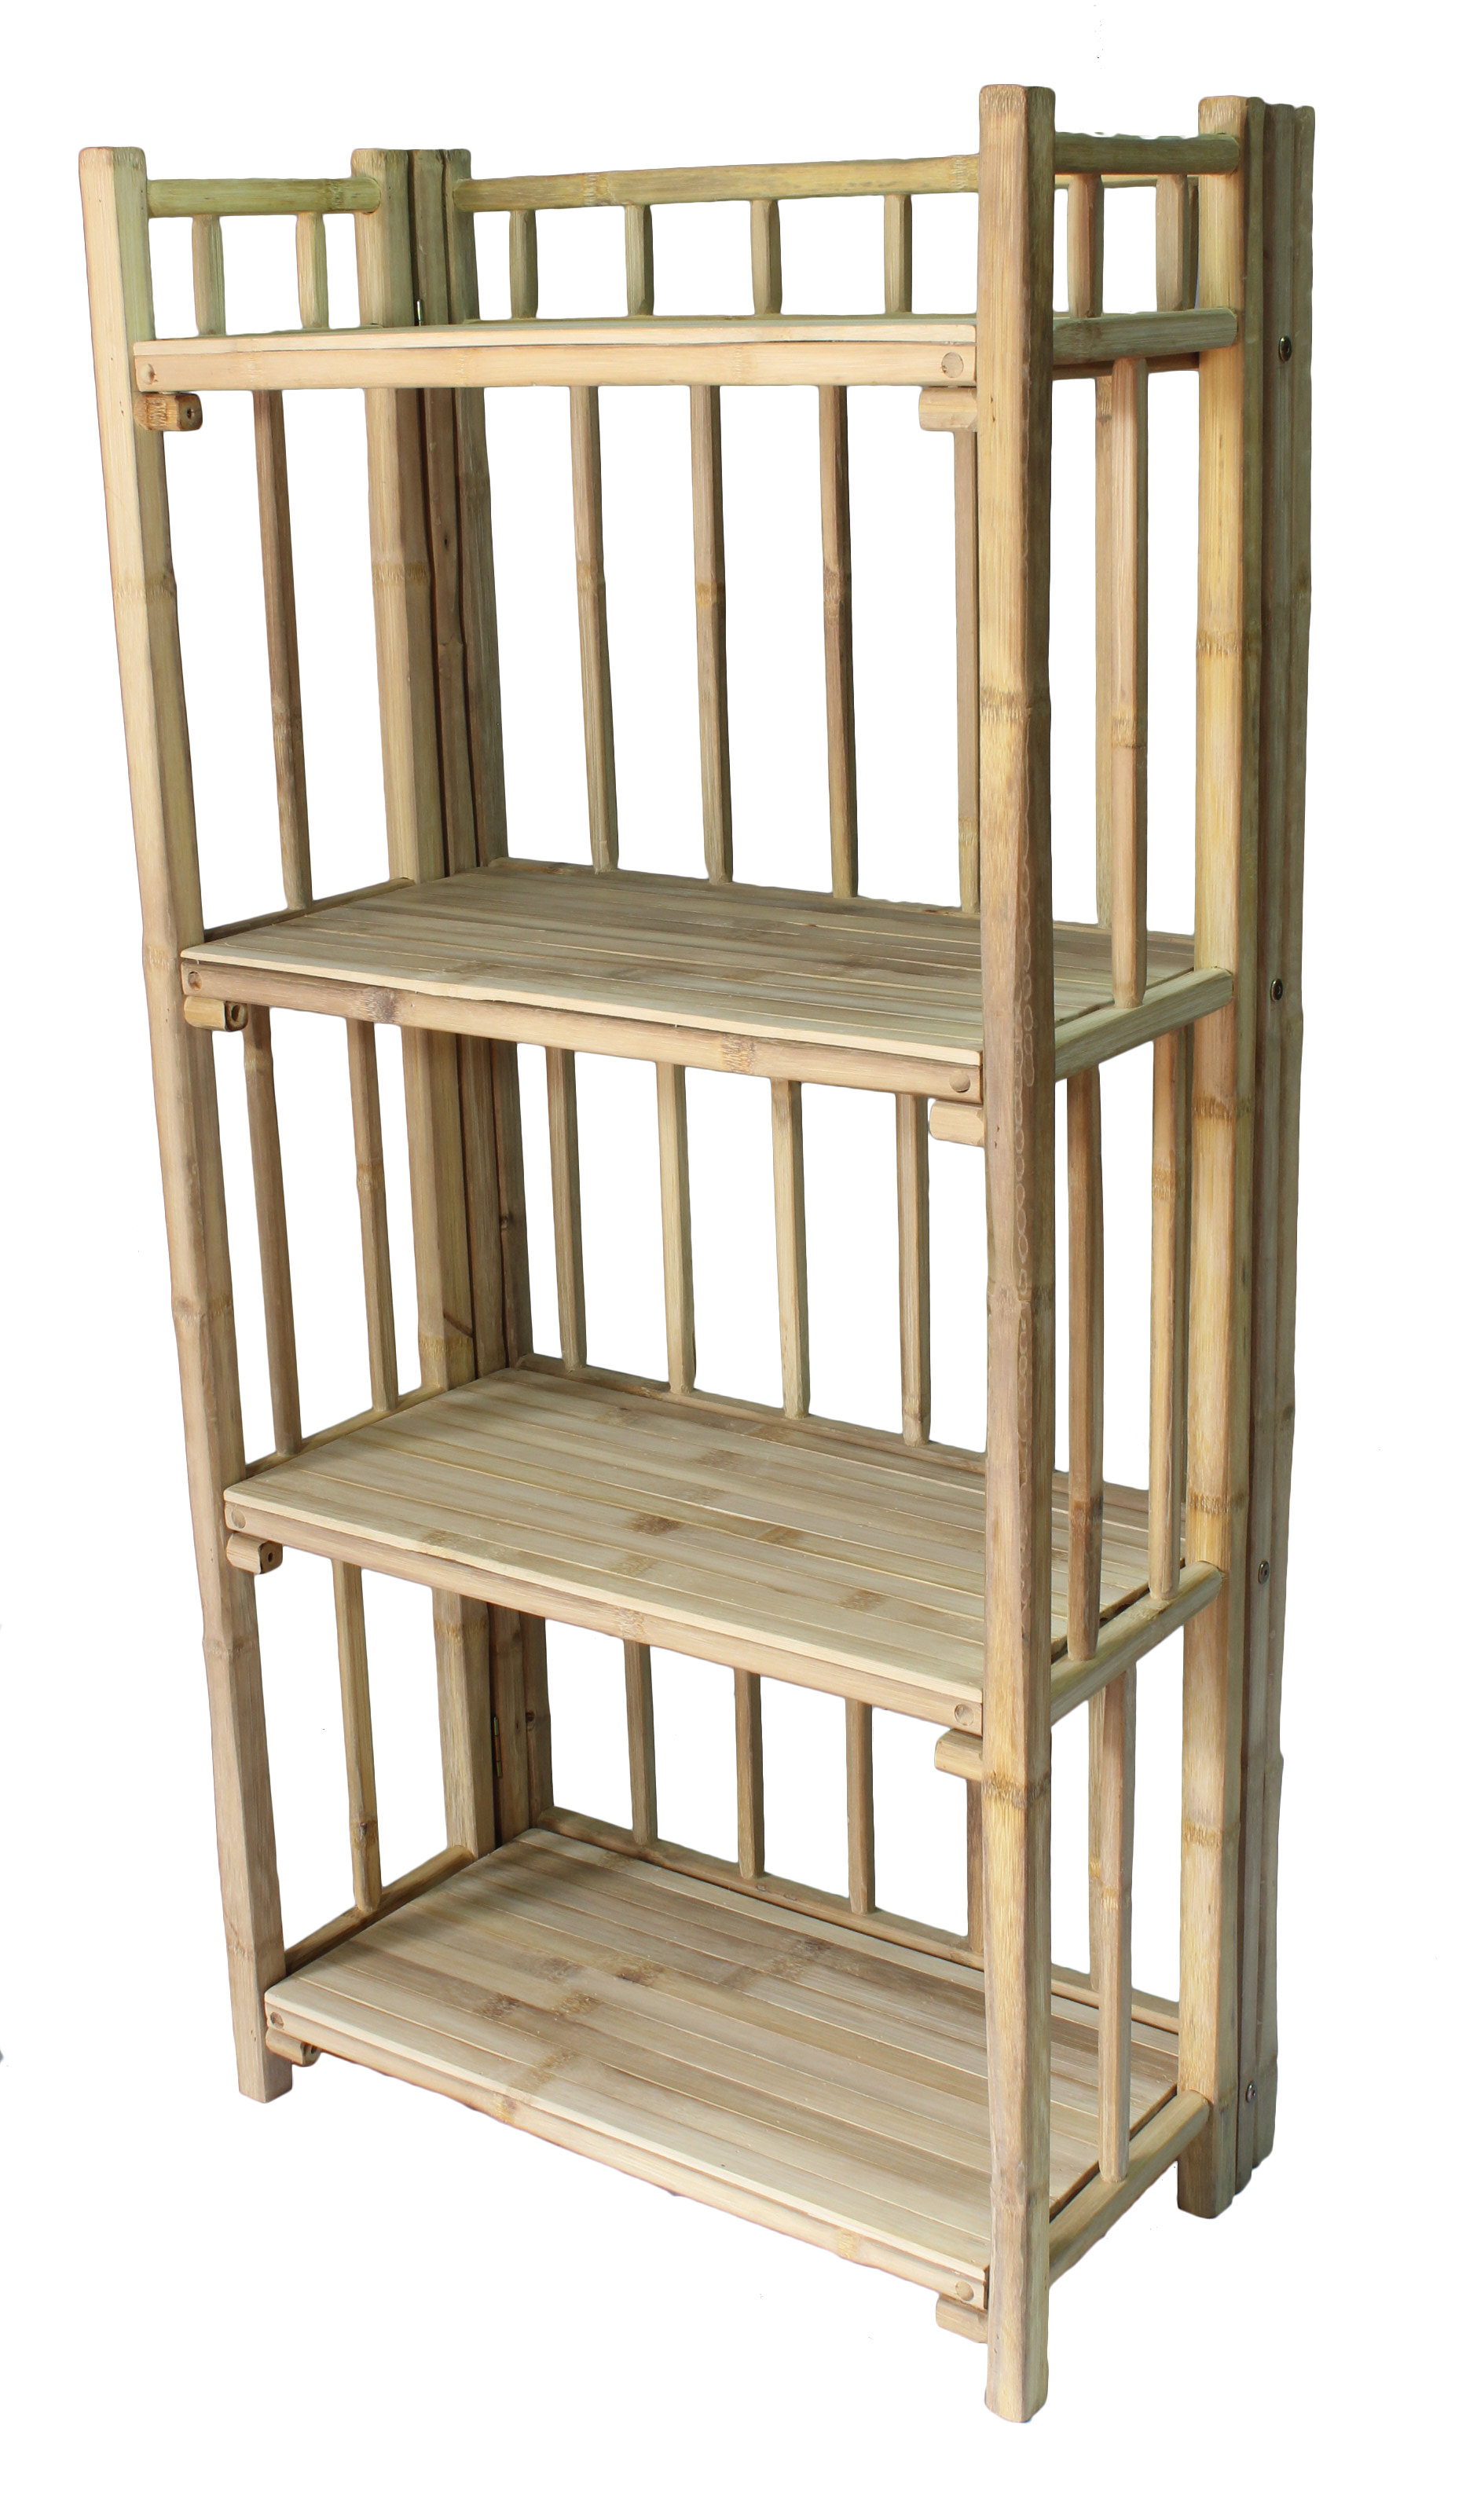 Tinoco Storage Shelf Standard Bookcases With Regard To 2020 Cristopher 4 Tier Standard Bookcase (View 9 of 20)